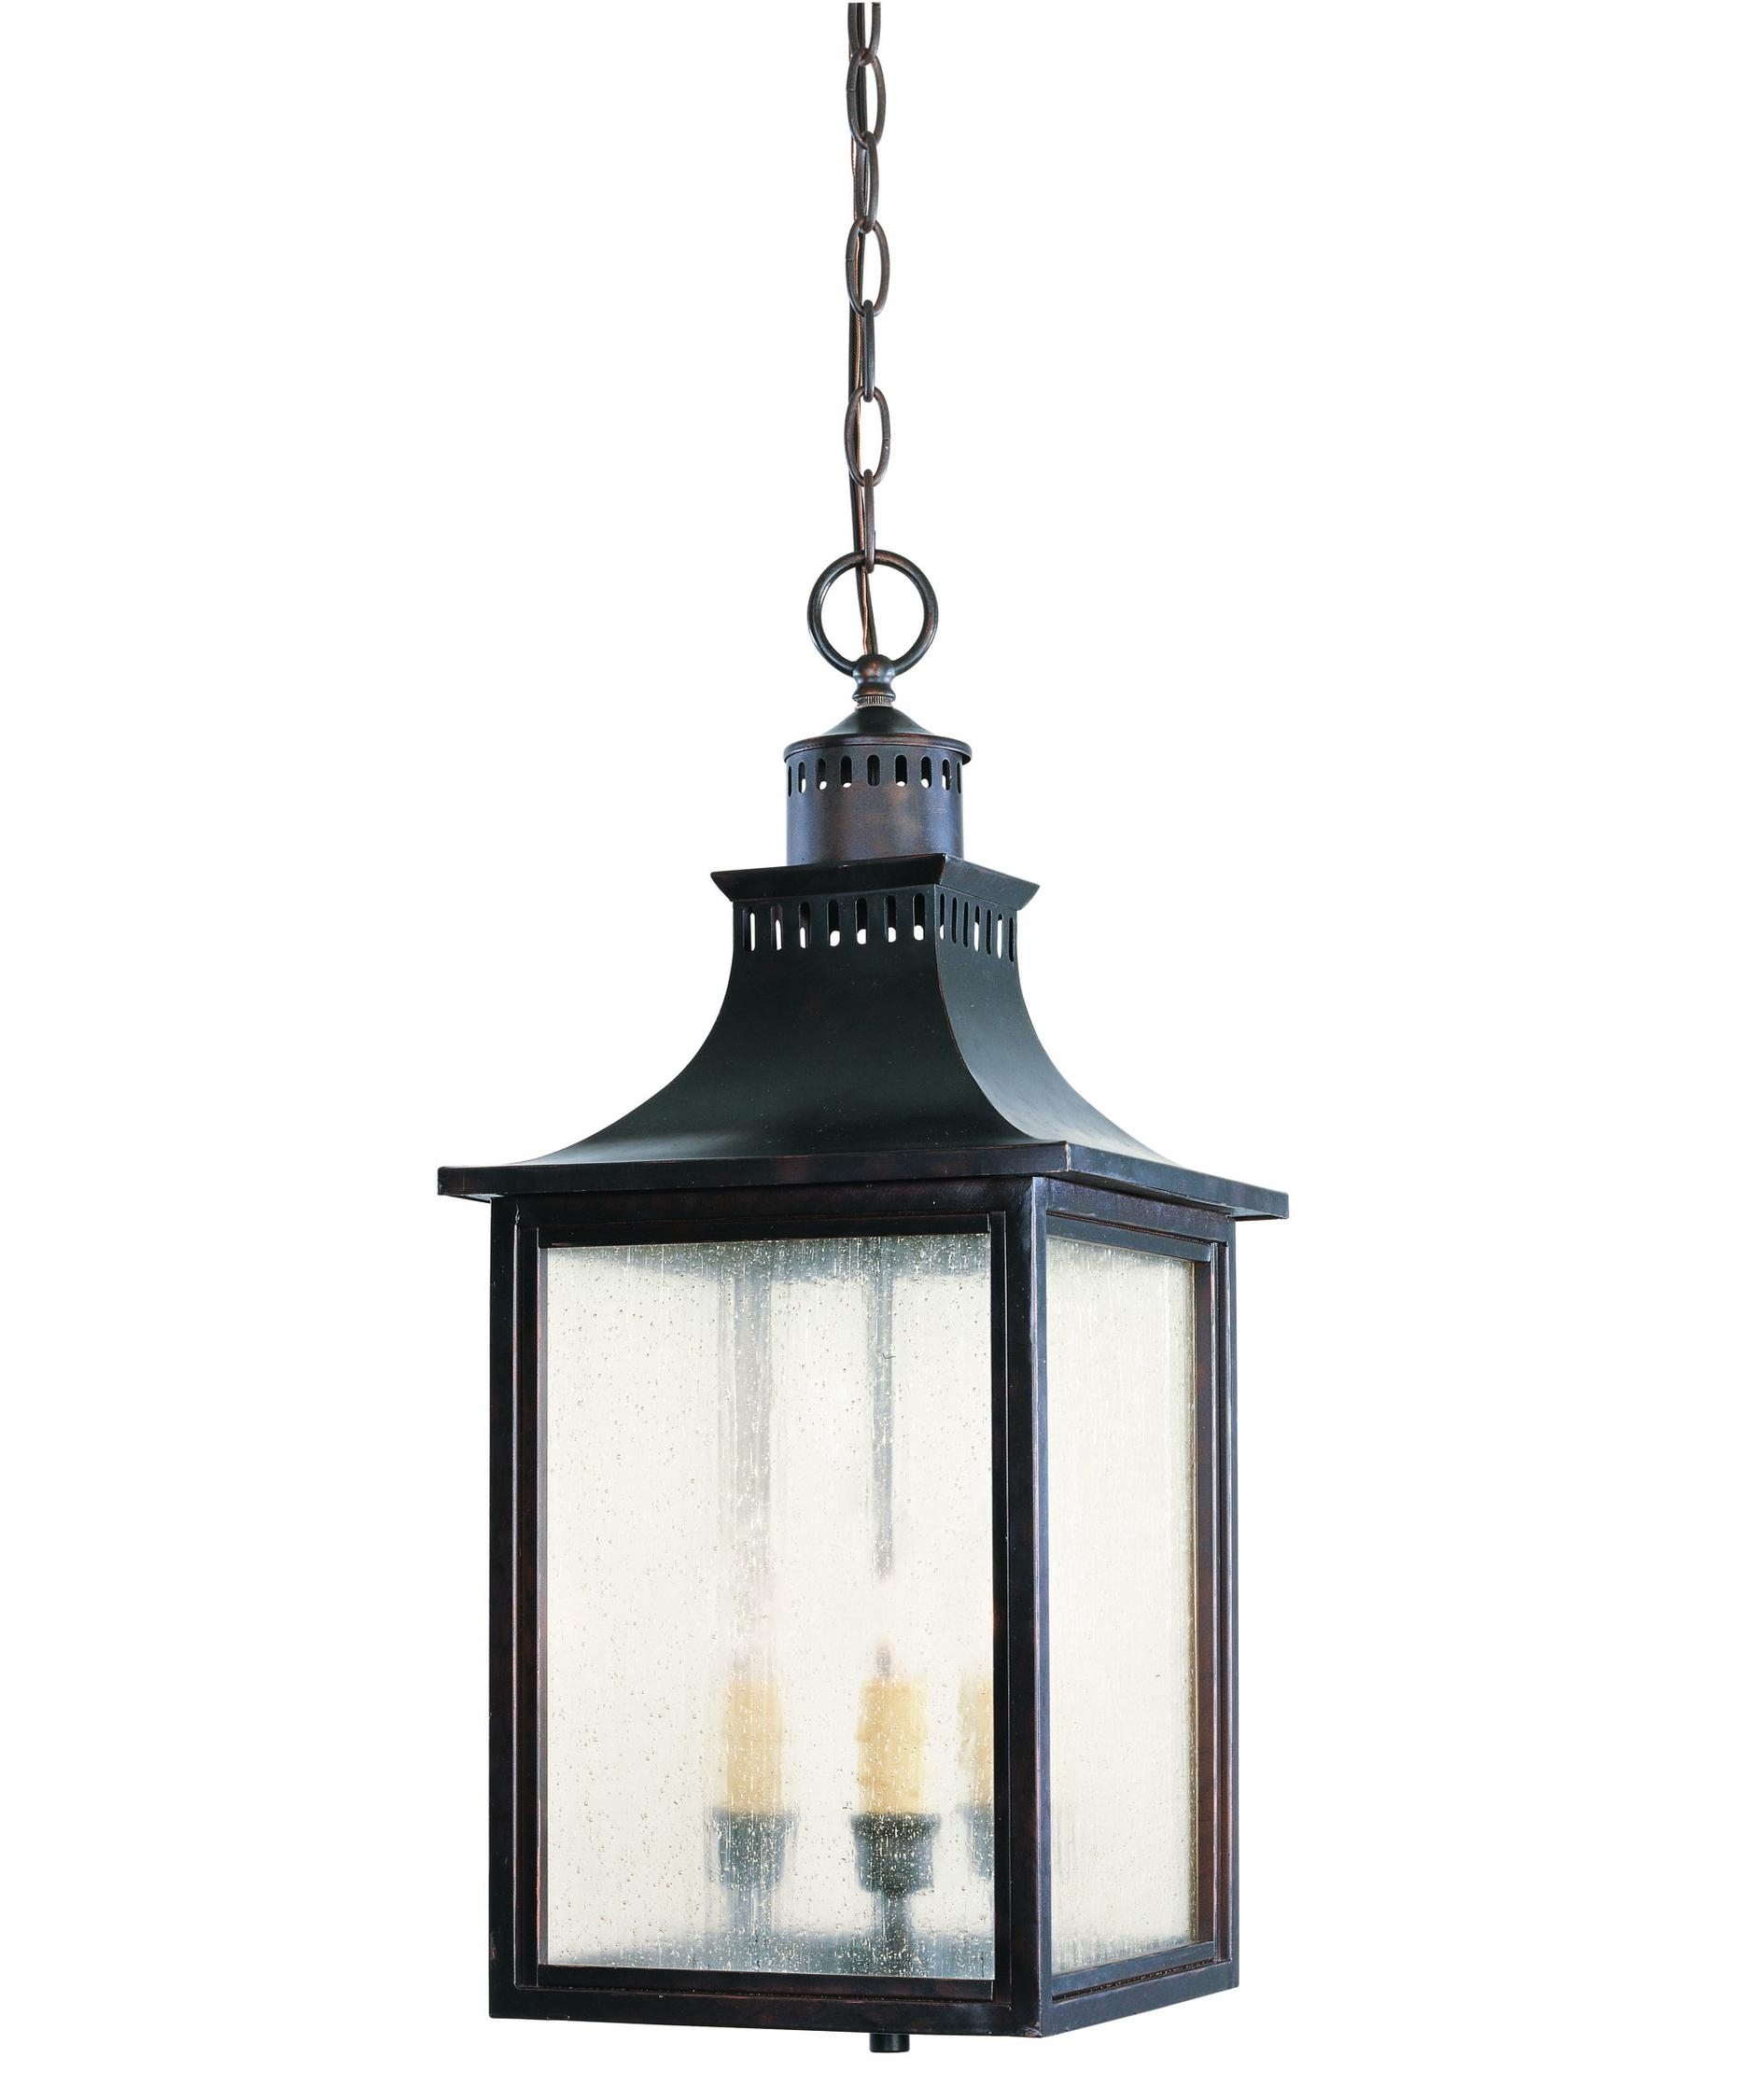 Savoy House 5-256 Monte Grande 10 Inch Wide 3 Light Outdoor Hanging pertaining to Outdoor Lanterns Lights (Image 19 of 20)